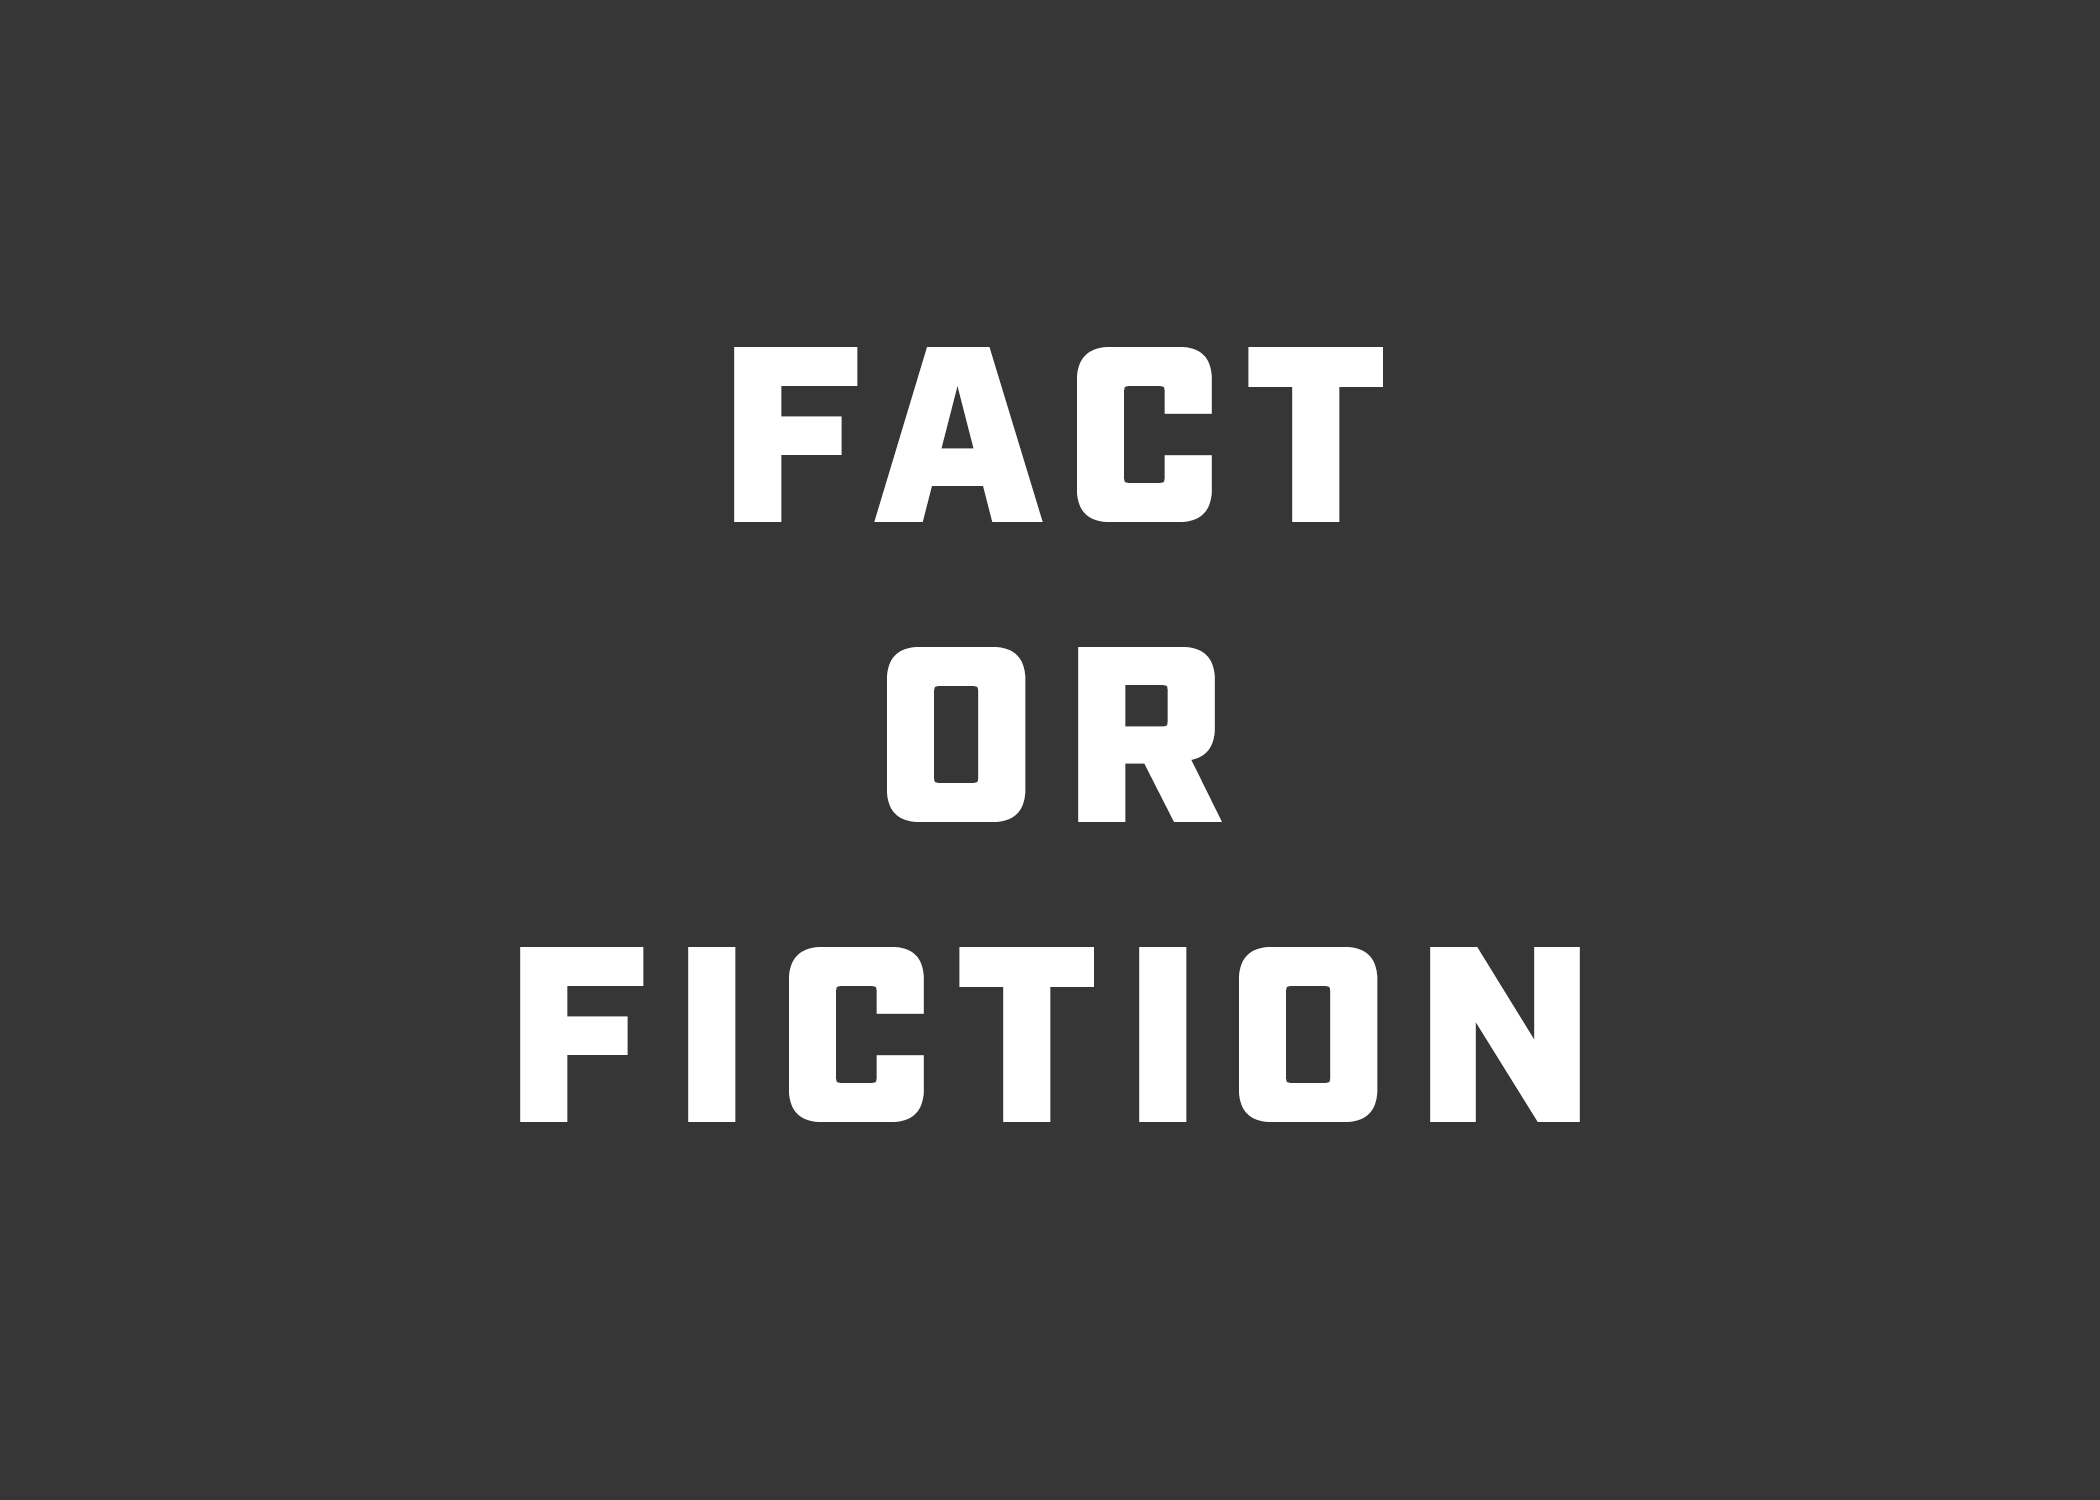 Images - Fact or Fiction